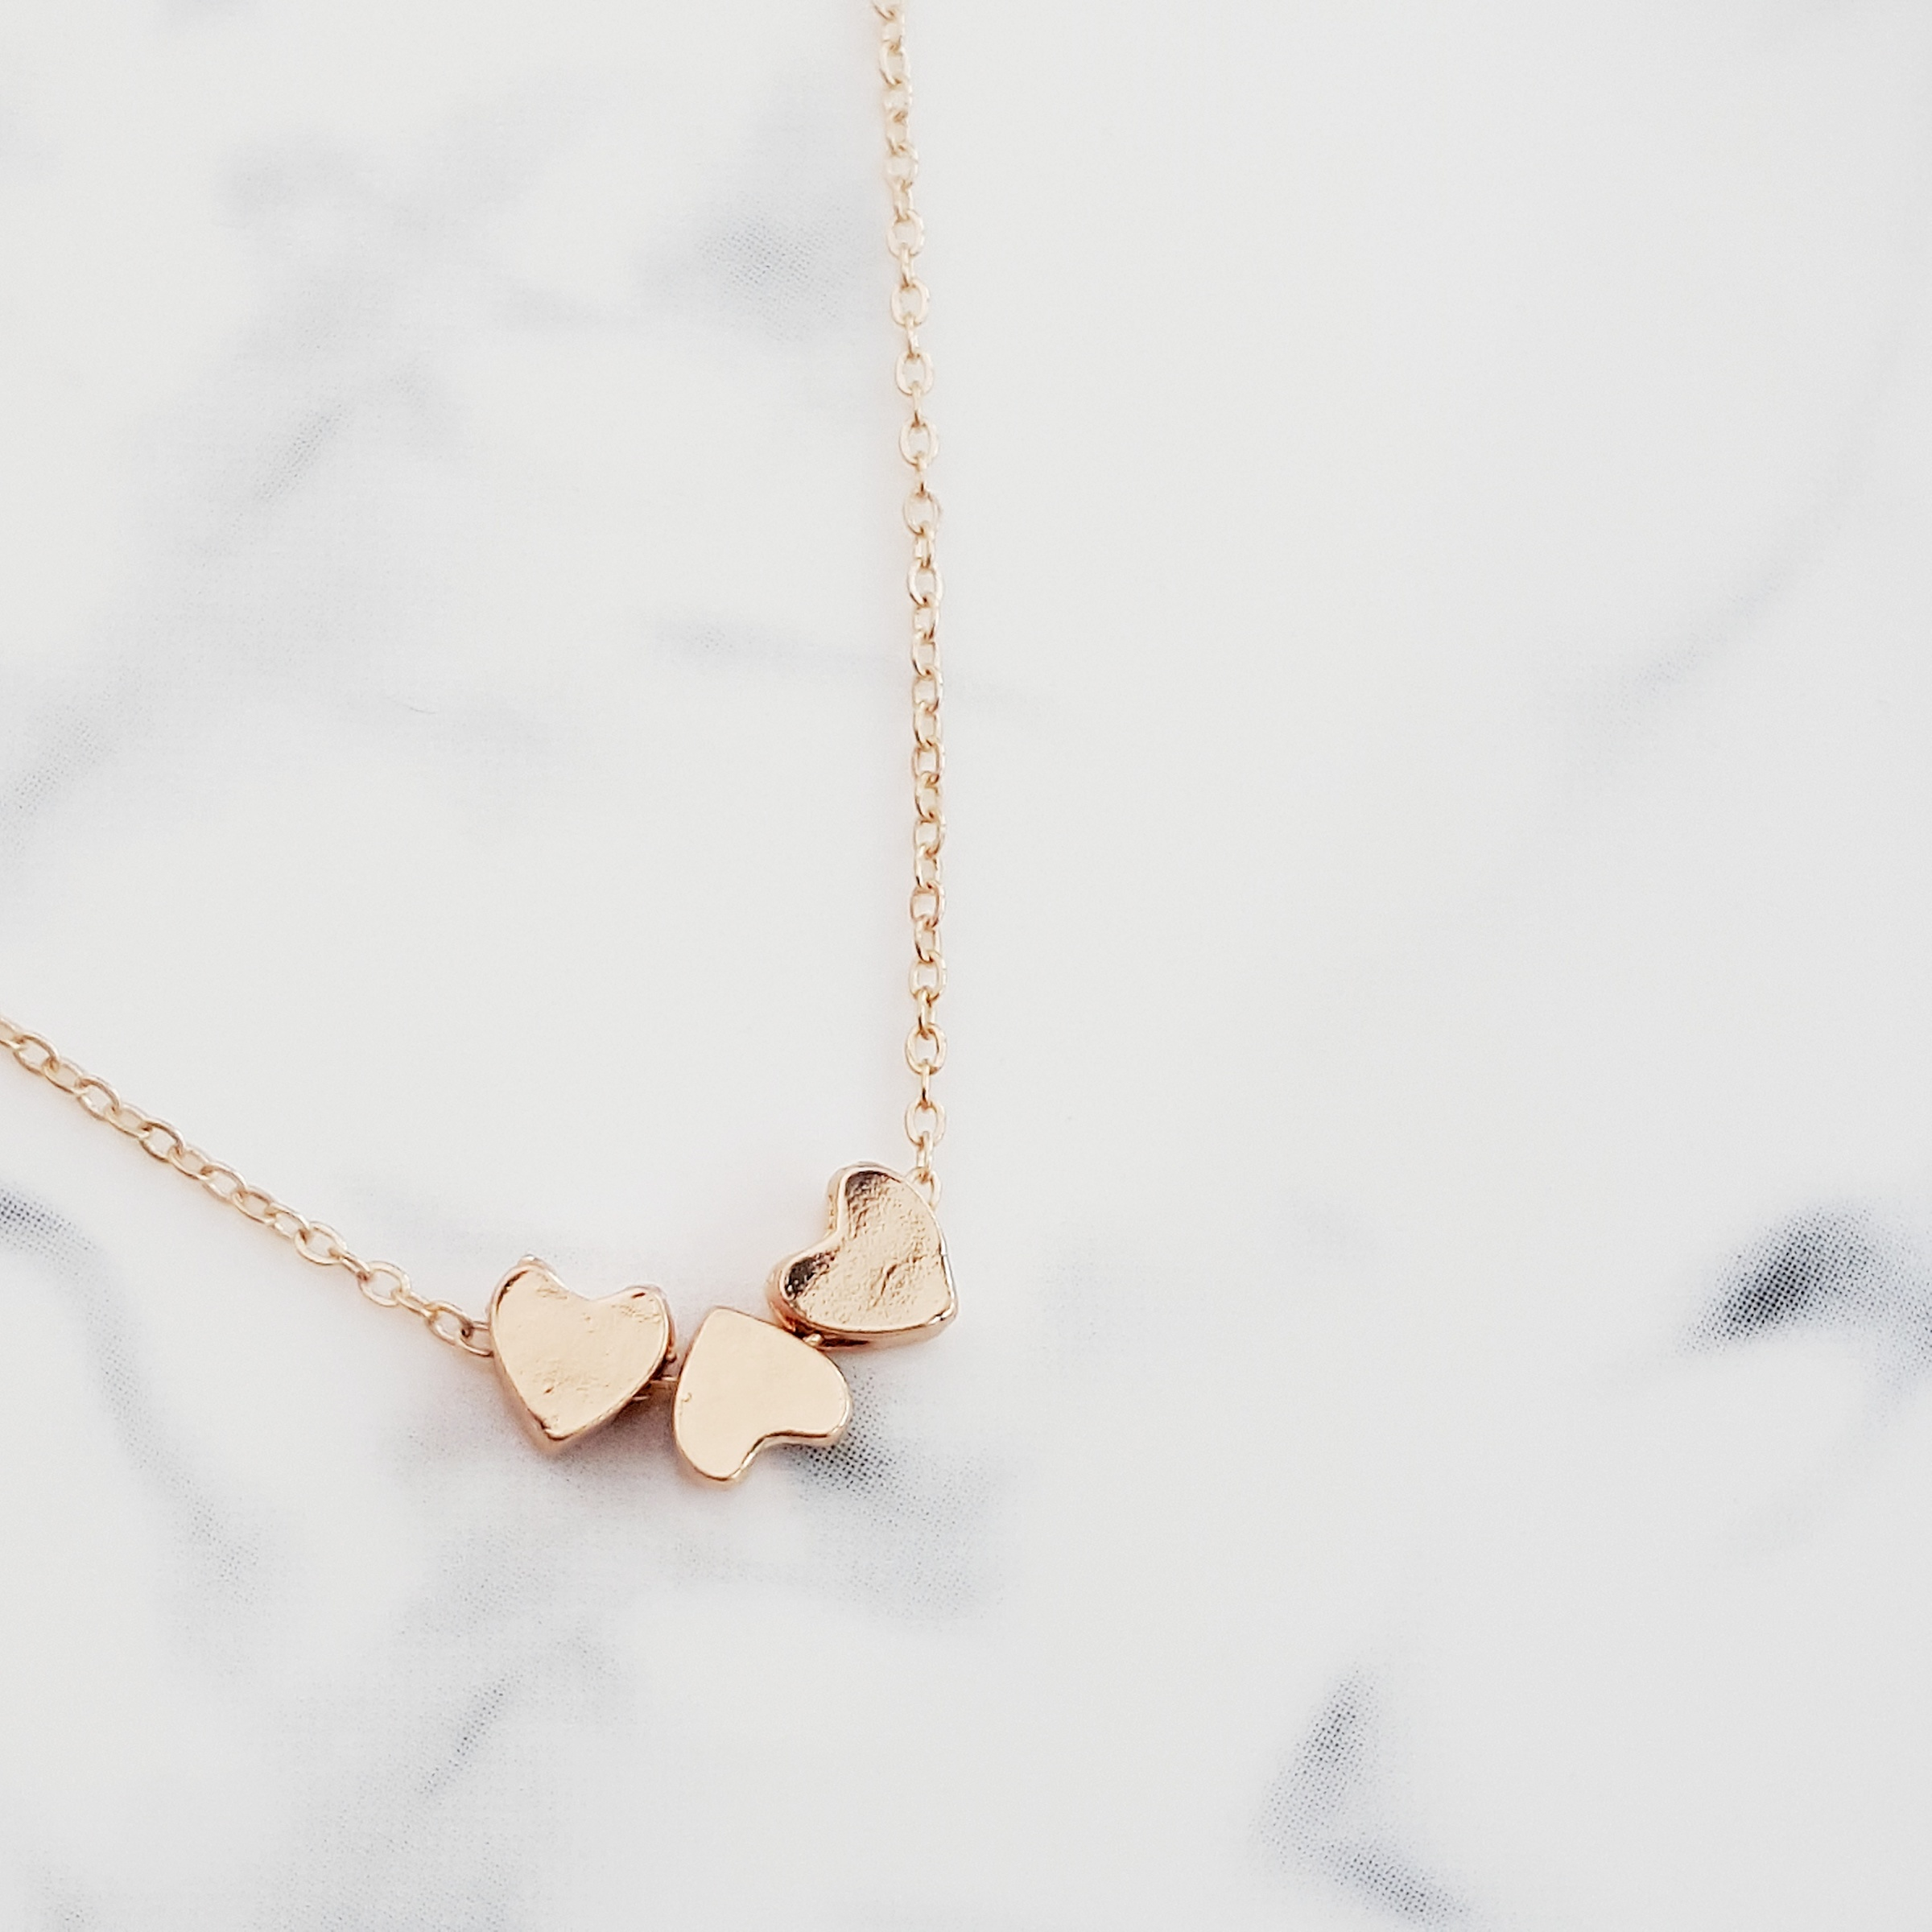 kindred pinneapplenecklace rose pineapple gold products together shop dainty necklace